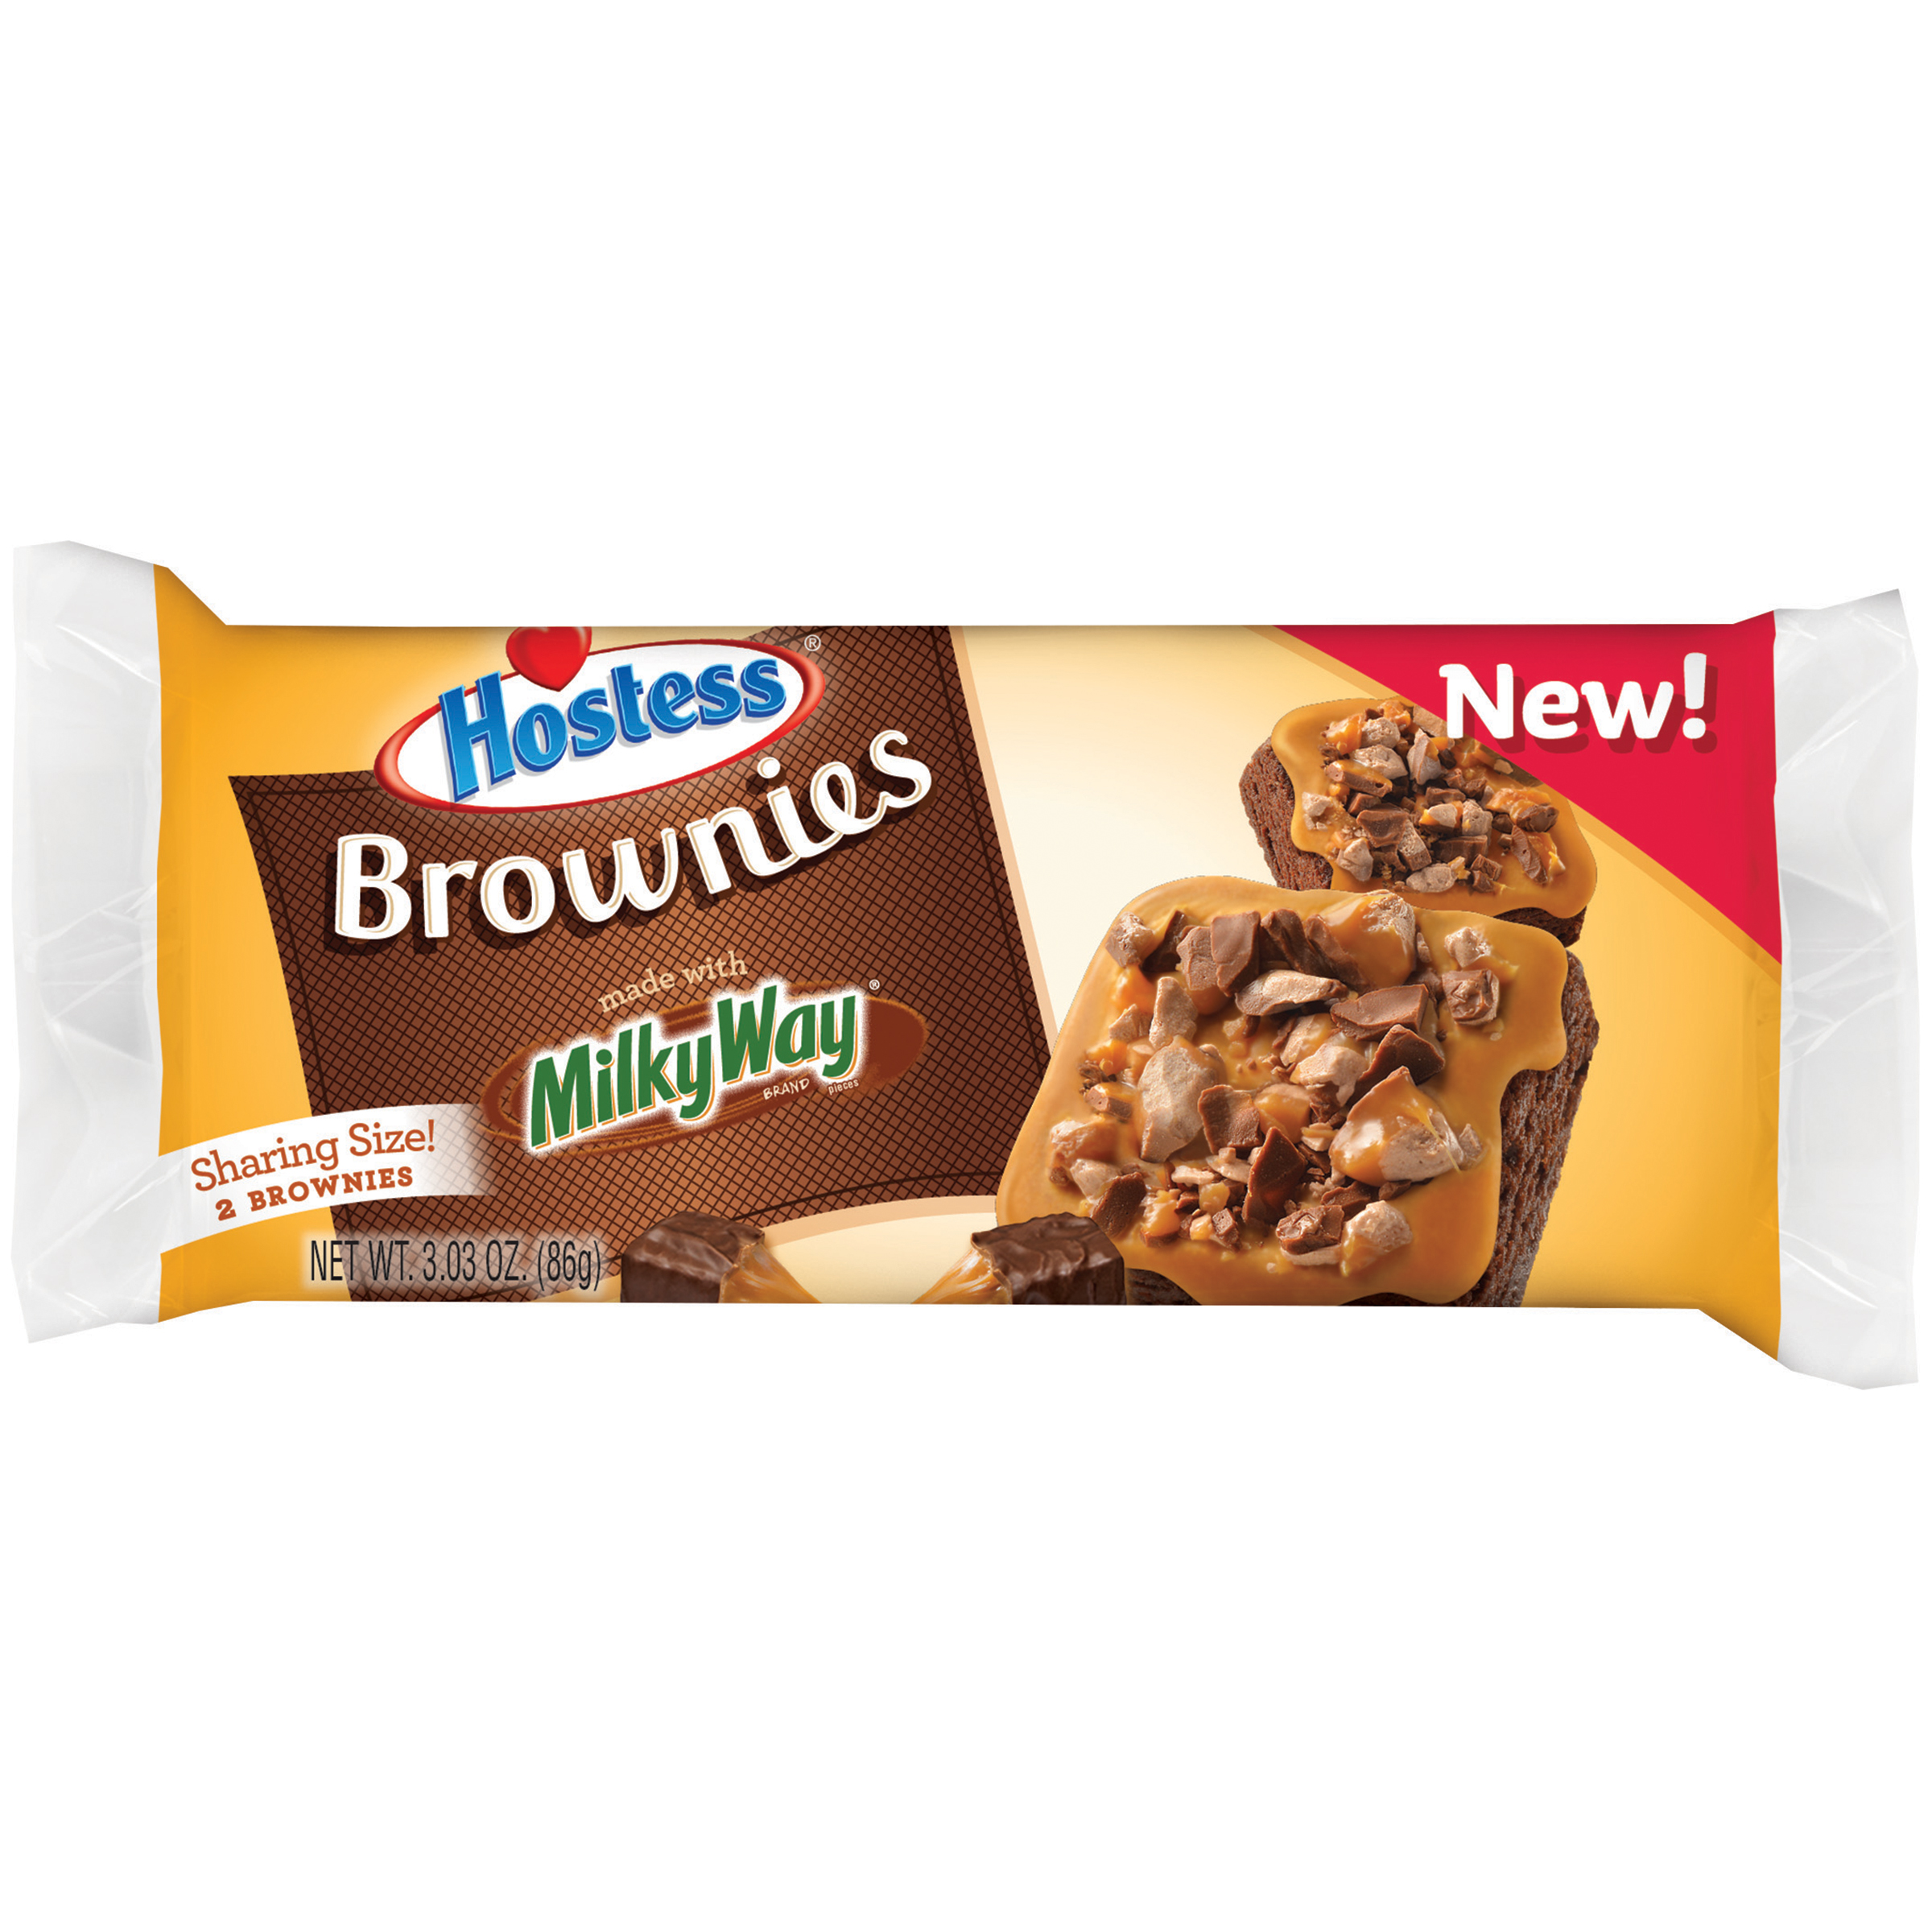 Hostess Brownies Made with Milky Way, 3.03 oz